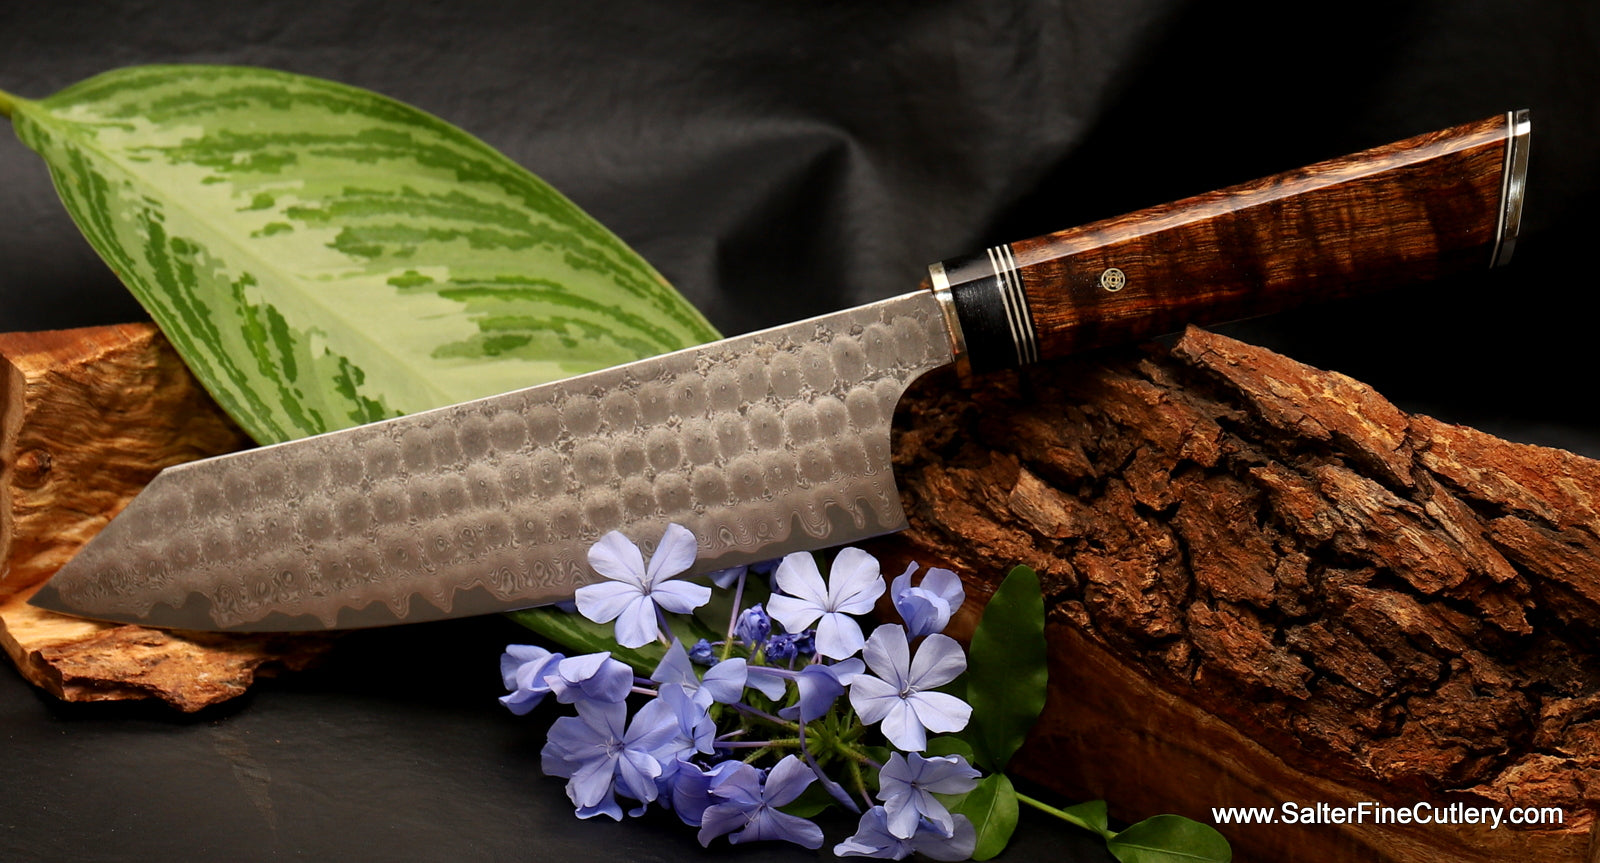 New 180mm bunka style vegetable and meat knife with extra decorative handle by Salter Fine Cutlery